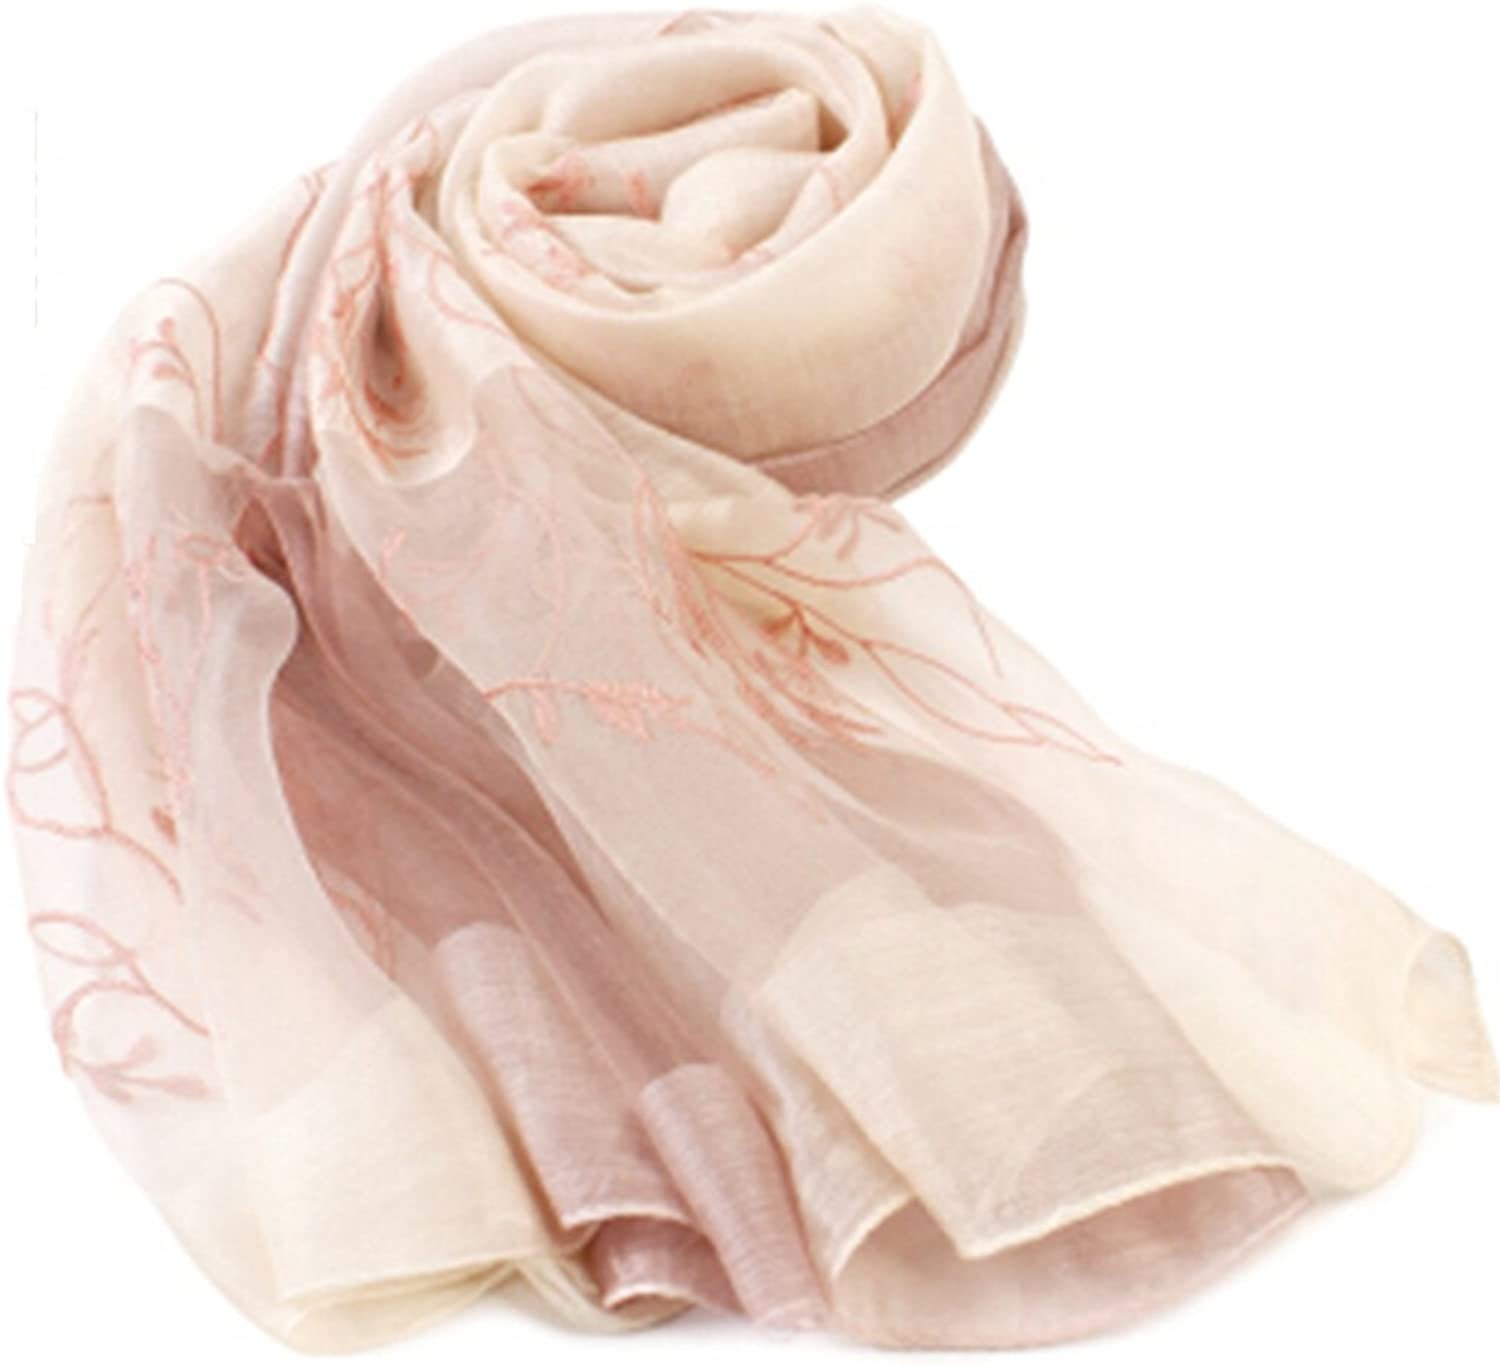 Blended silk scarf women spring and autumn thin scarf female mulberry silk embroidery shawl sunscreen scarf tree branch rice gradient